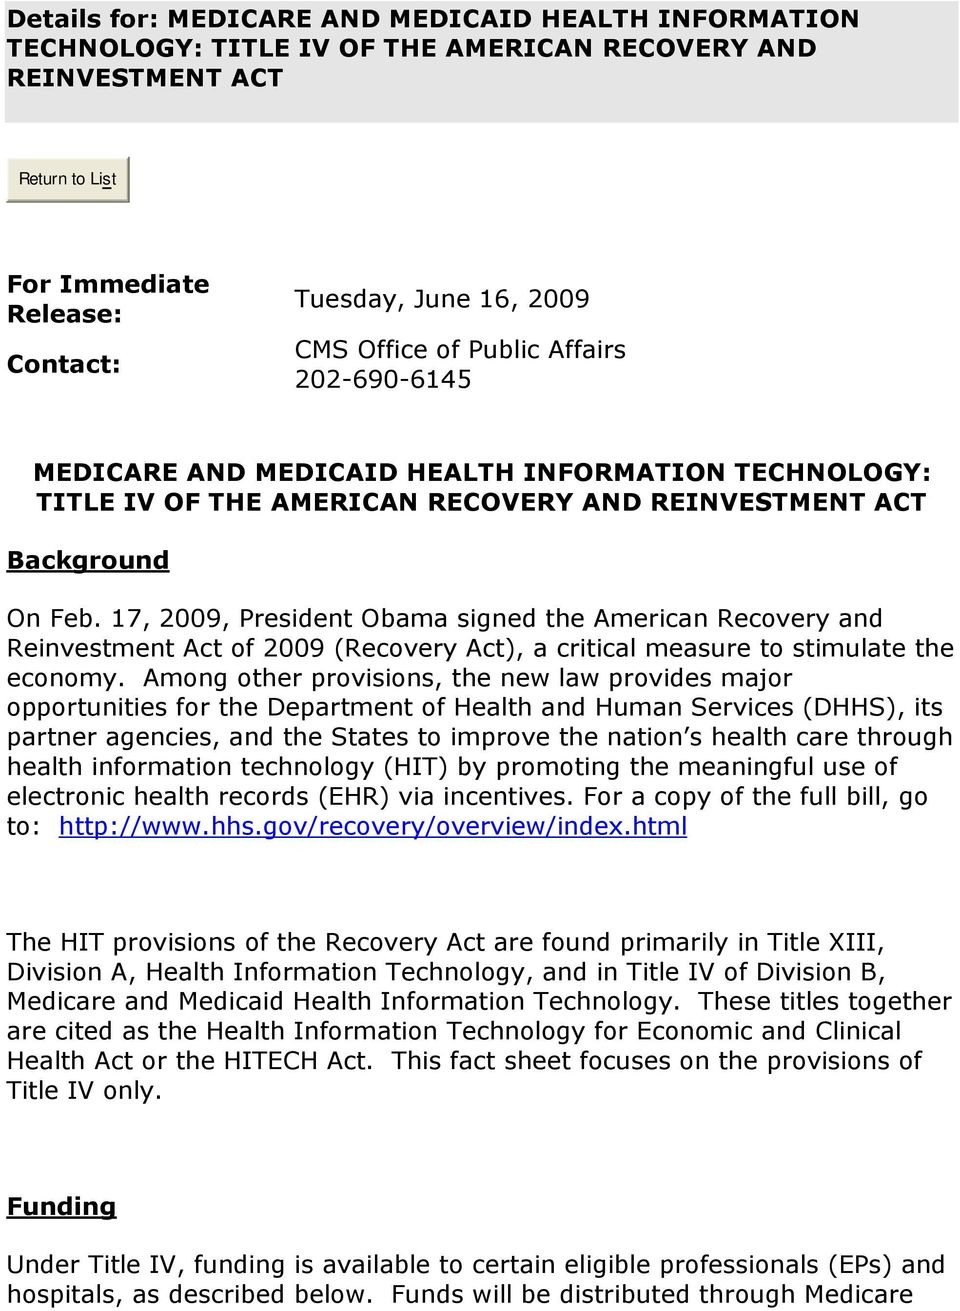 17, 2009, President Obama signed the American Recovery and Reinvestment Act of 2009 (Recovery Act), a critical measure to stimulate the economy.